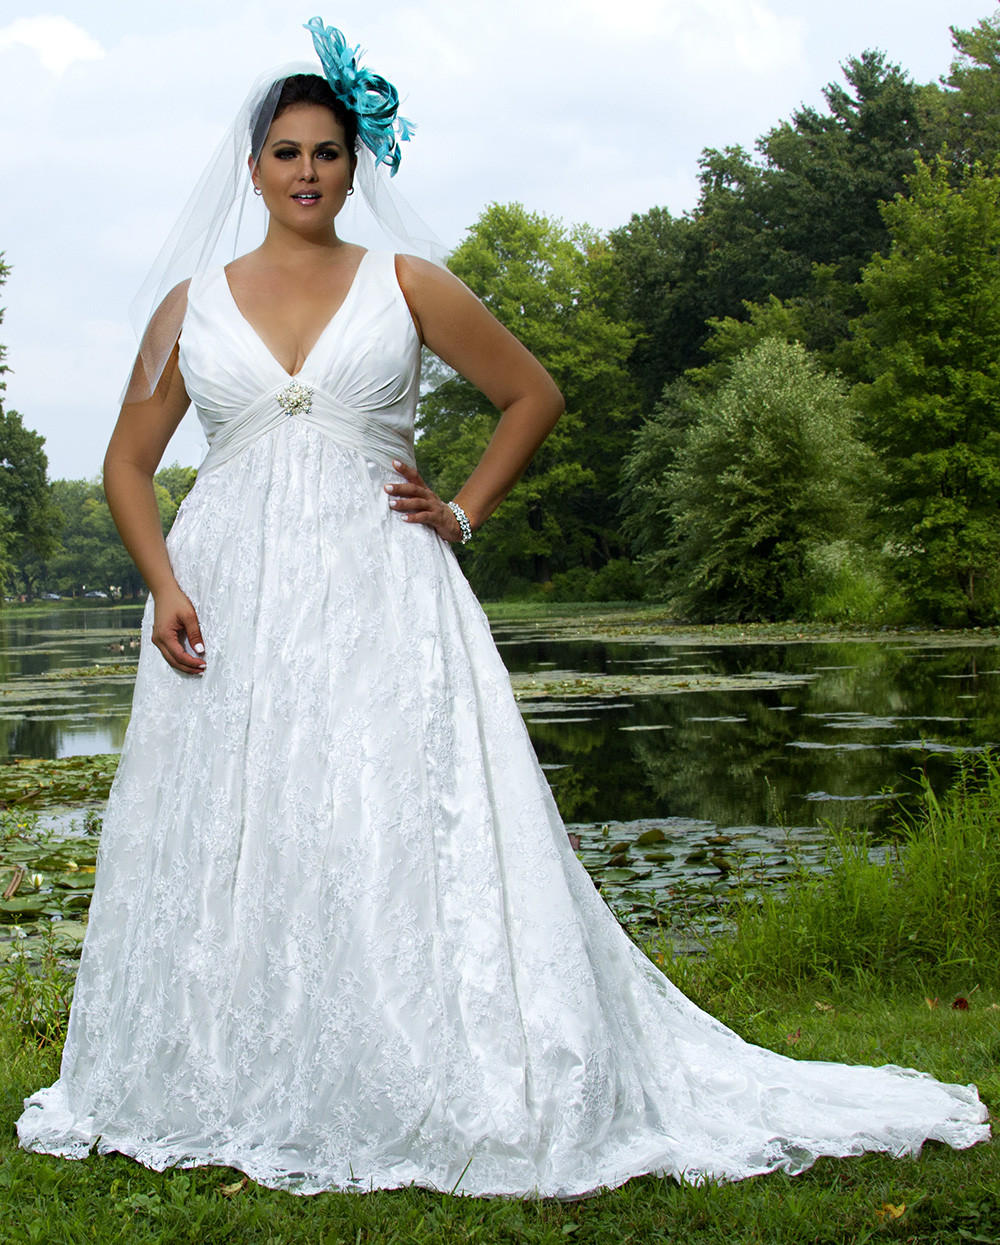 Wedding dress cleaning athens ga dress online uk for Wedding dresses in athens ga